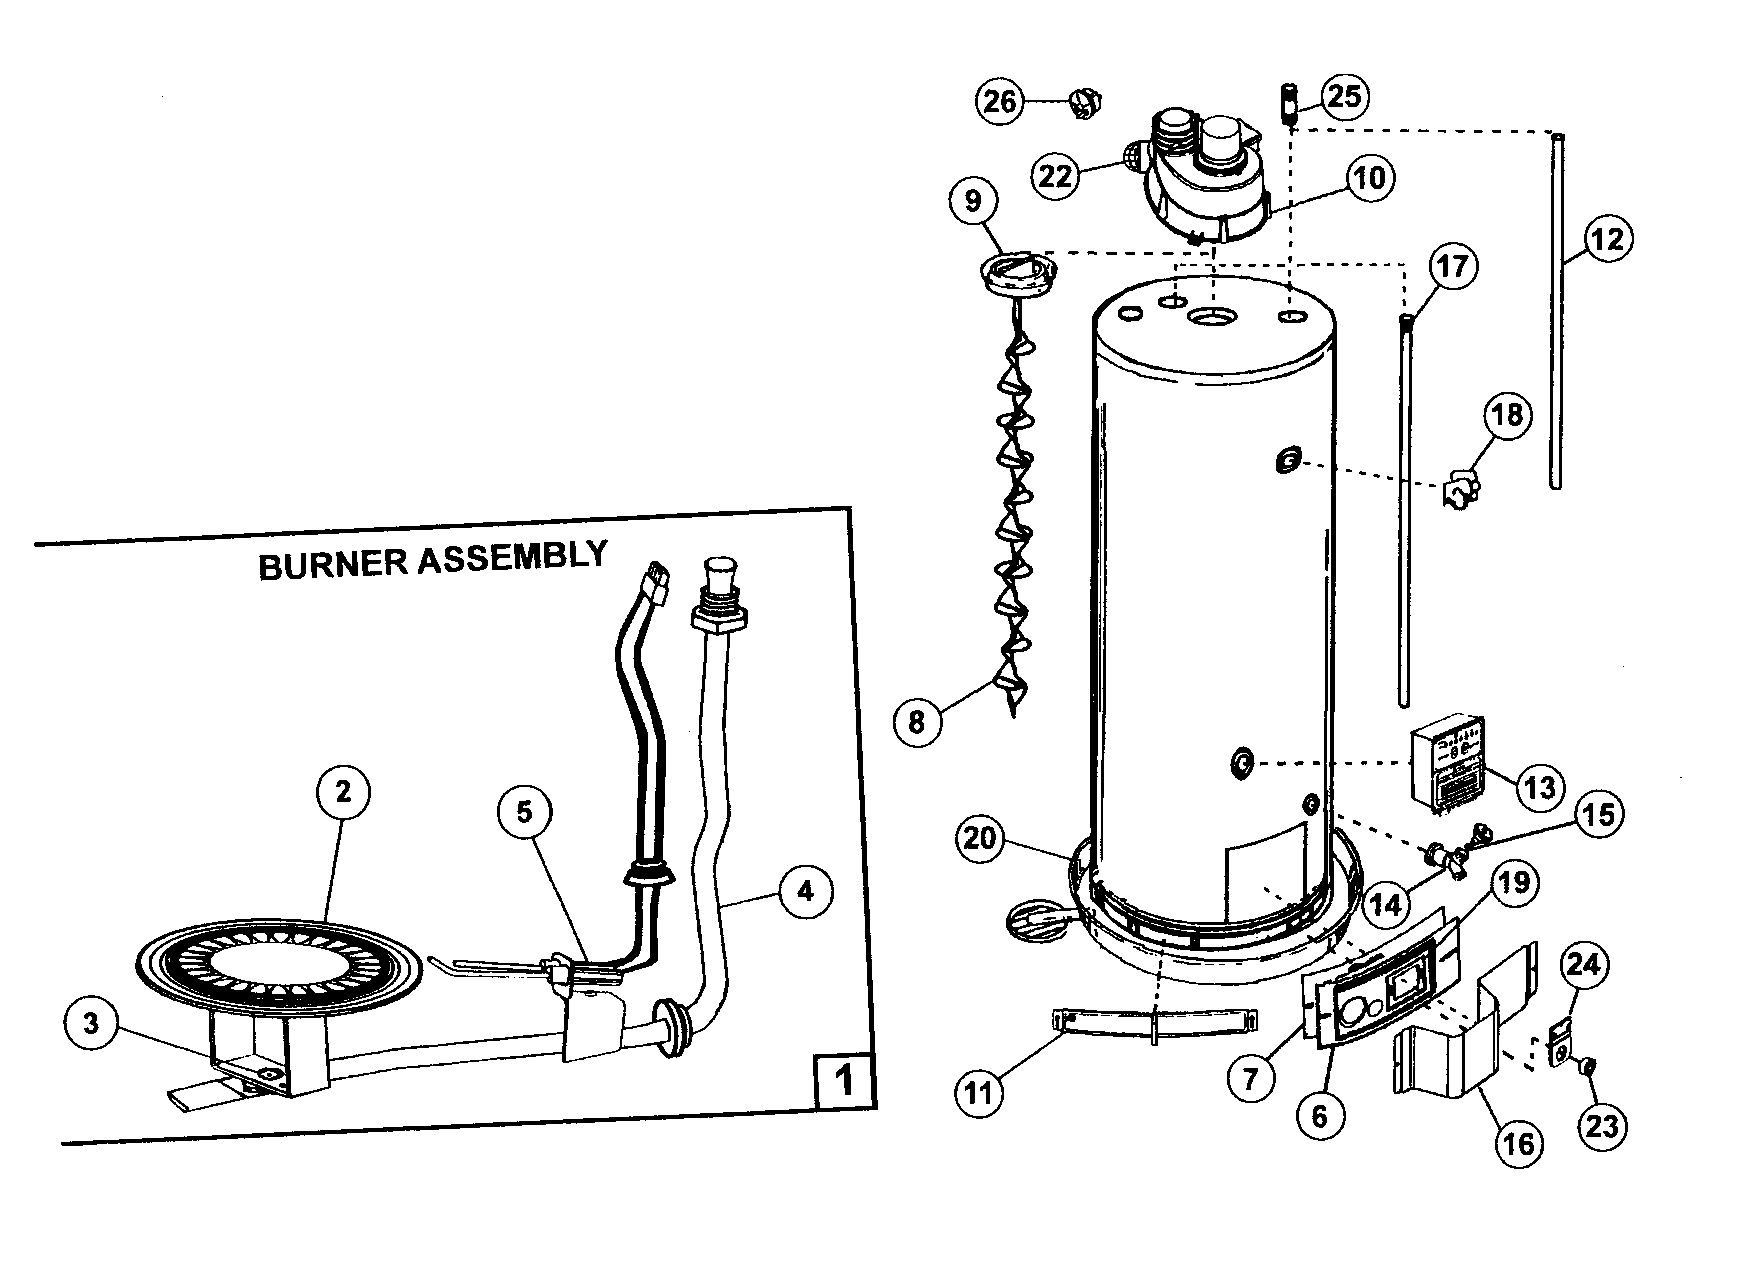 WATER HEATER Diagram & Parts List for Model 153332040